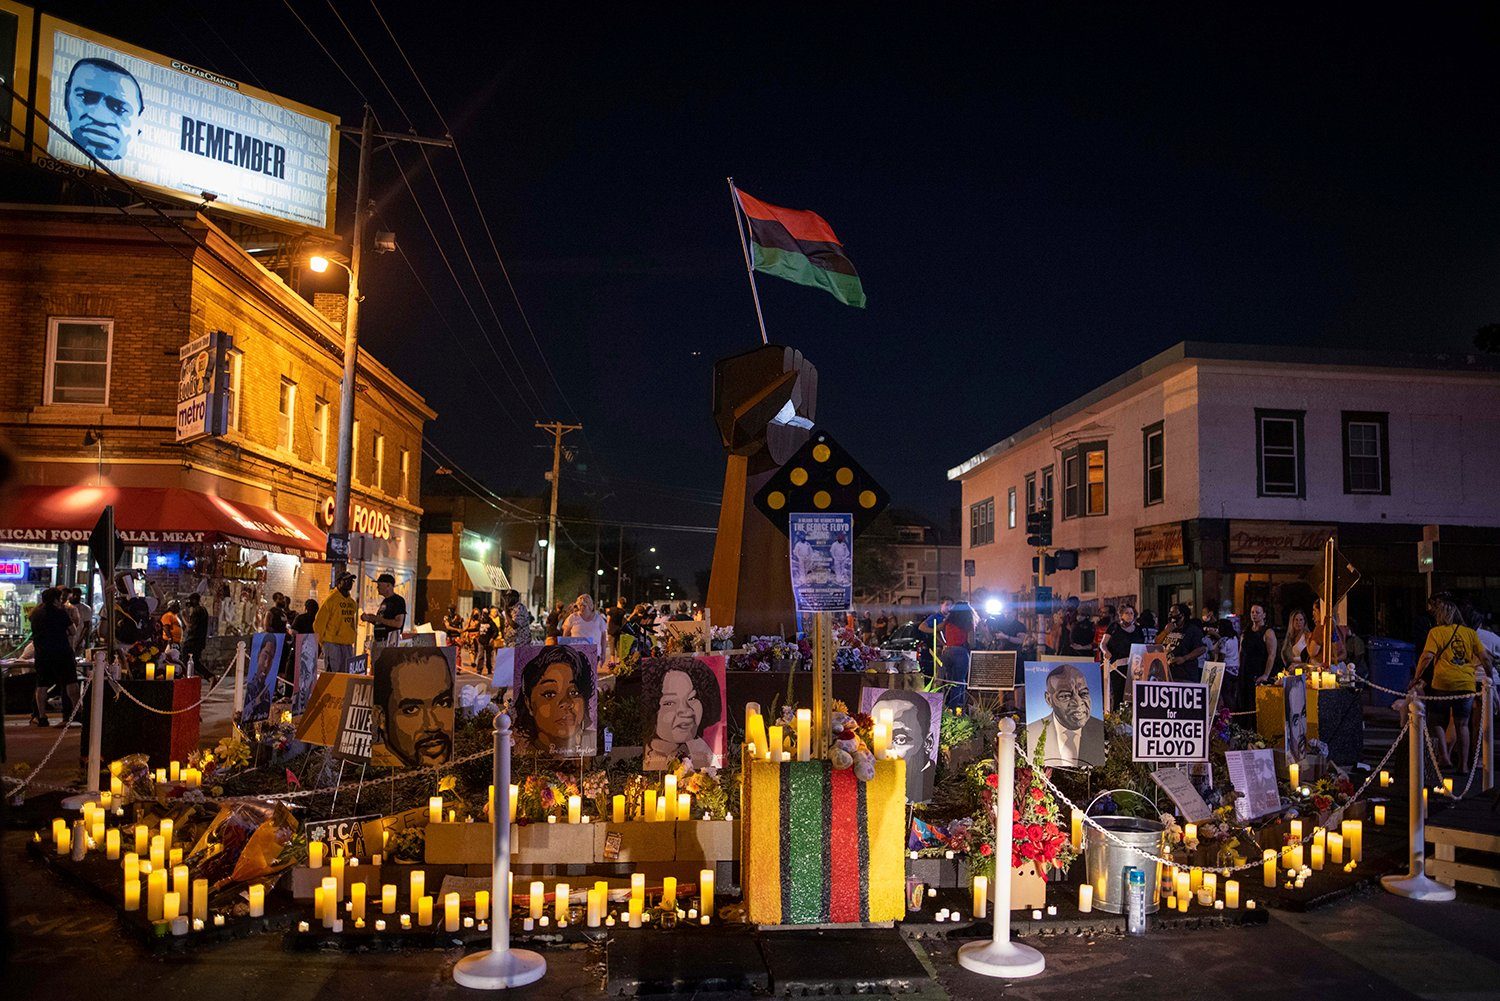 Community members place candles around the iron fist at 38th Street and Chicago Avenue--informally known as George Floyd Square--on the one-year anniversary of George Floyd's death, Tuesday, May 25, 2021, in Minneapolis. (AP Photo/Christian Monterrosa)